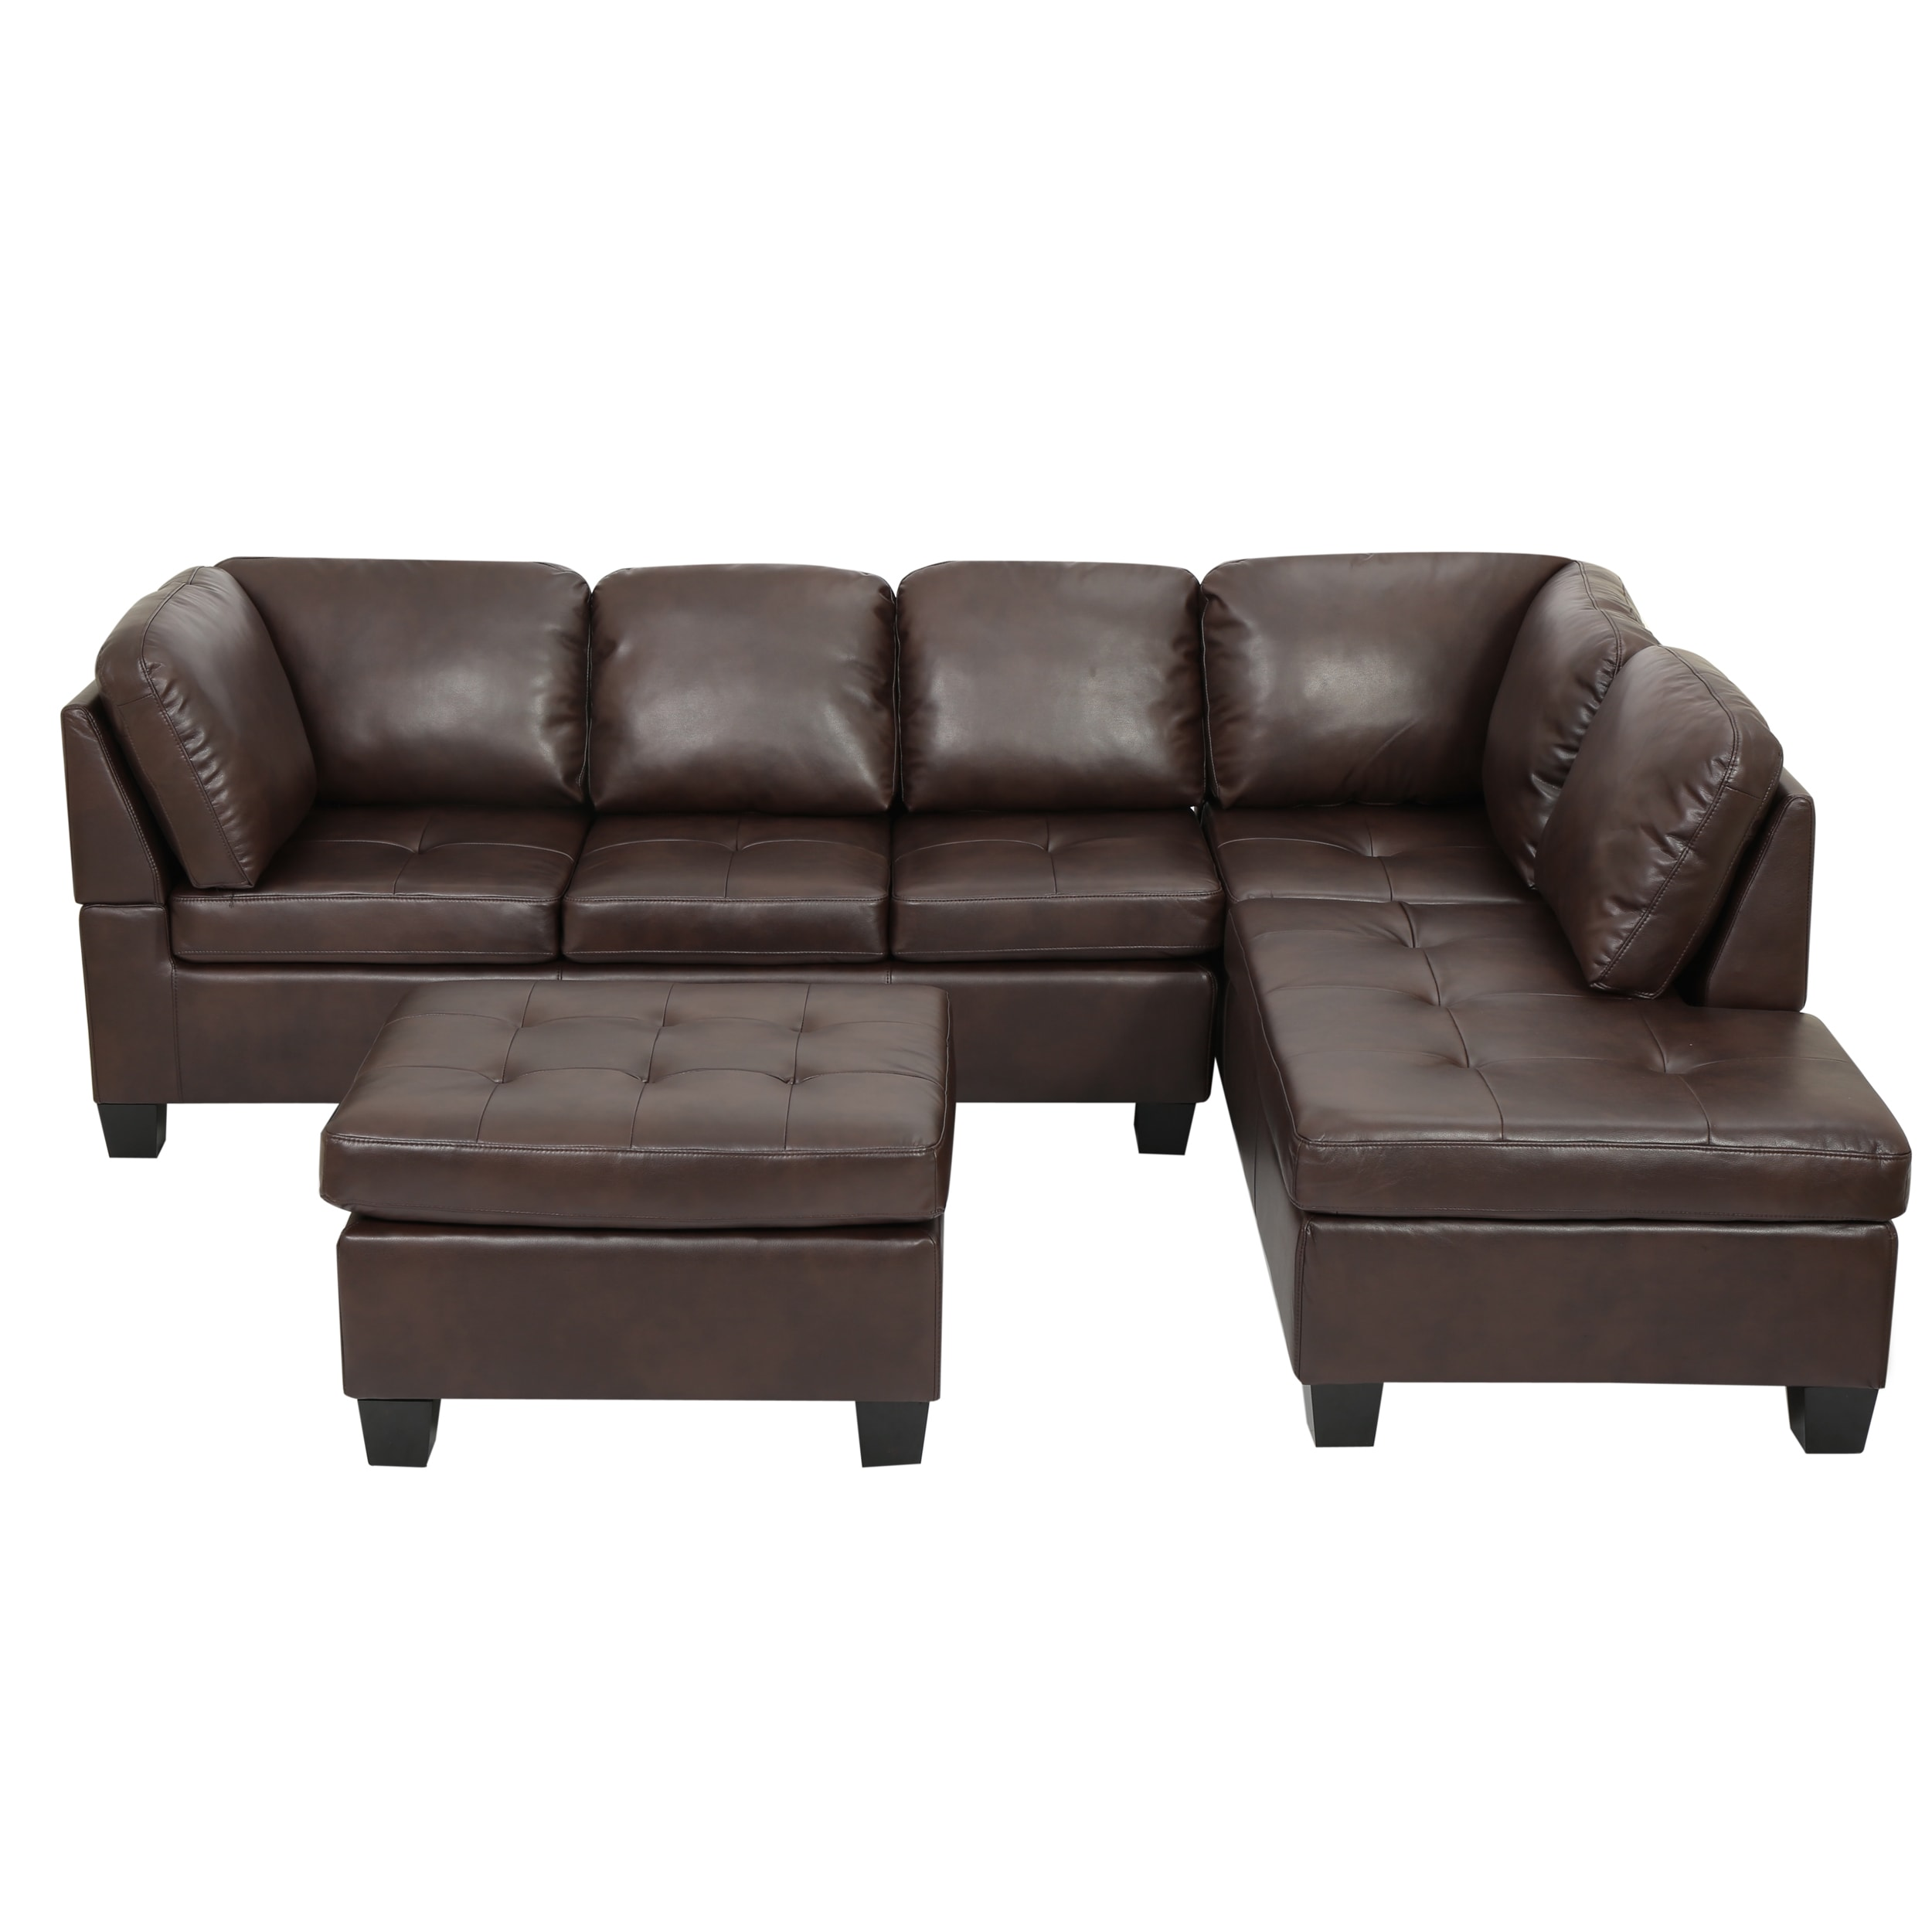 Shop Canterbury 3 Piece PU Leather Sectional Sofa Set By Christopher Knight  Home   Free Shipping Today   Overstock.com   10824803